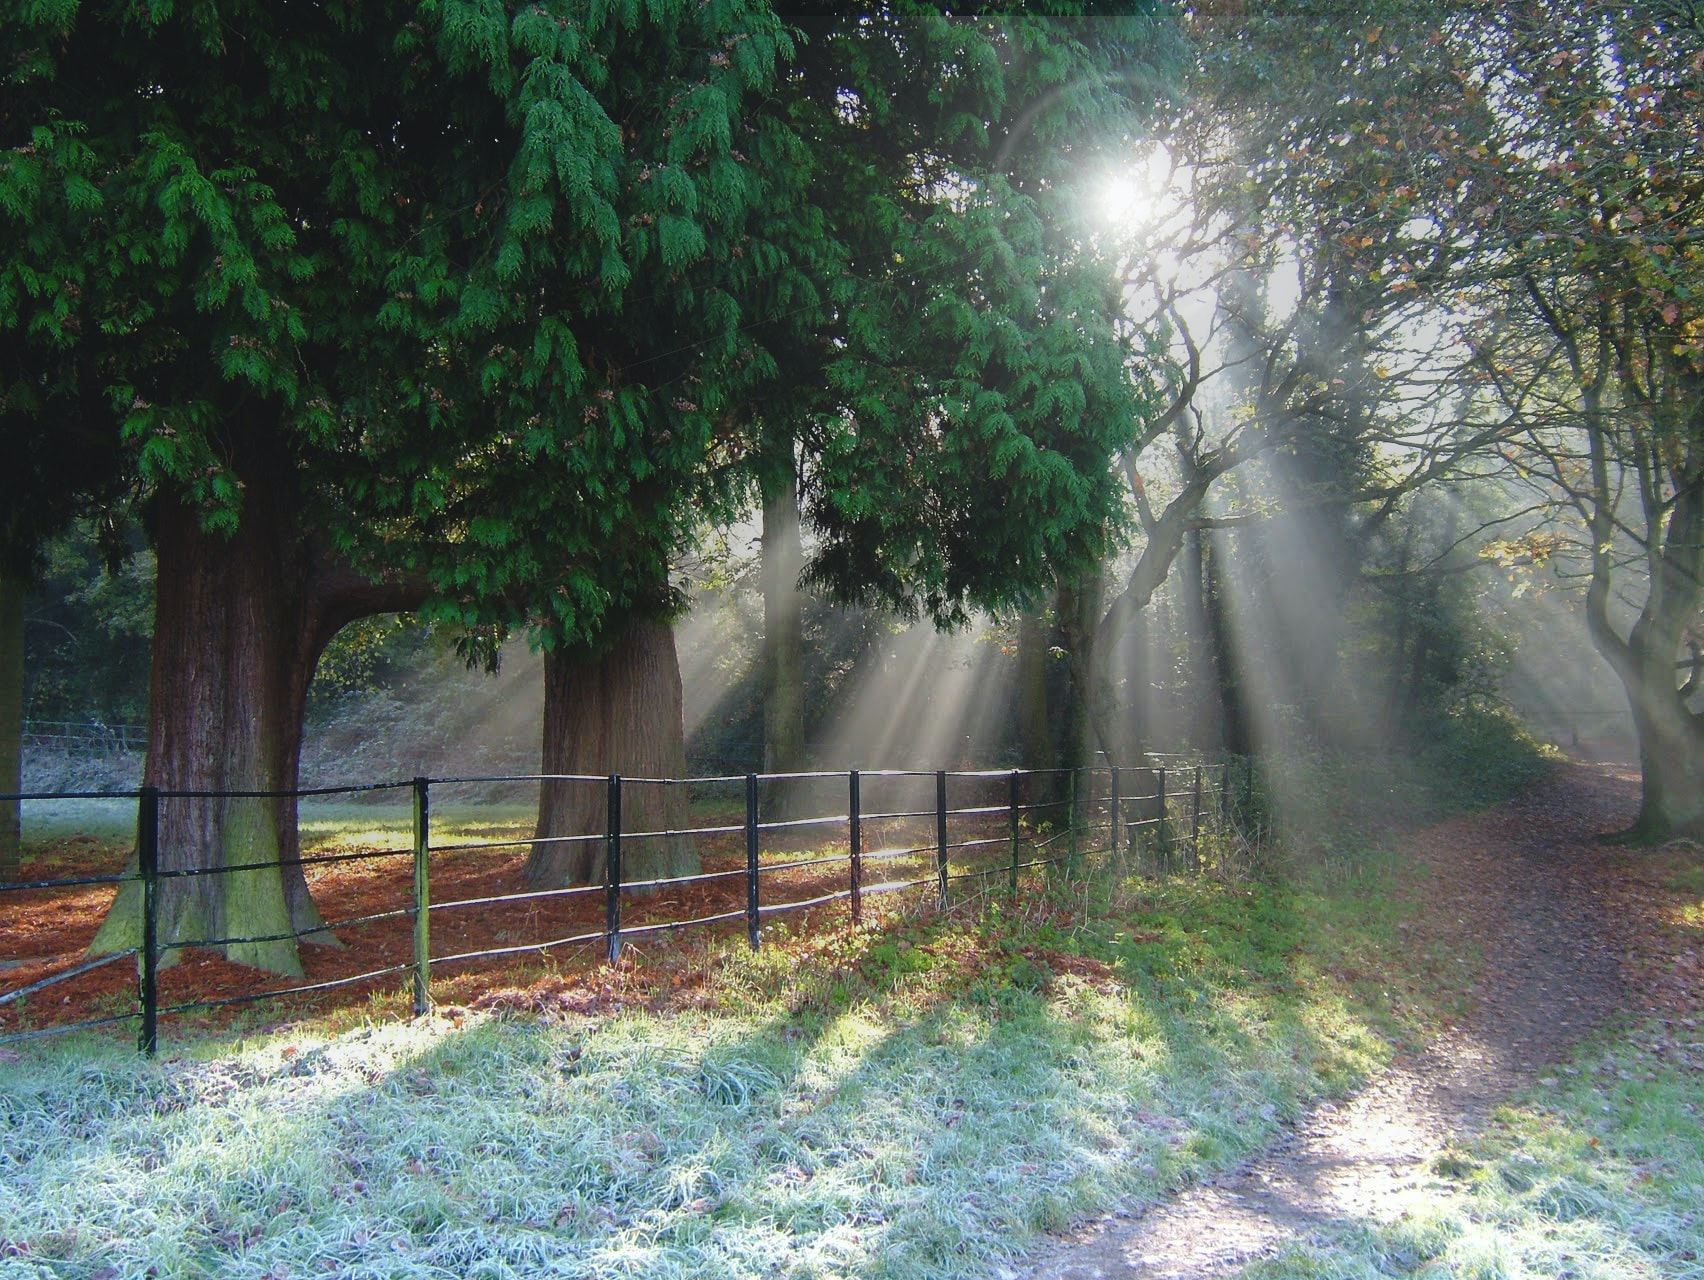 Bright sun over a footpath